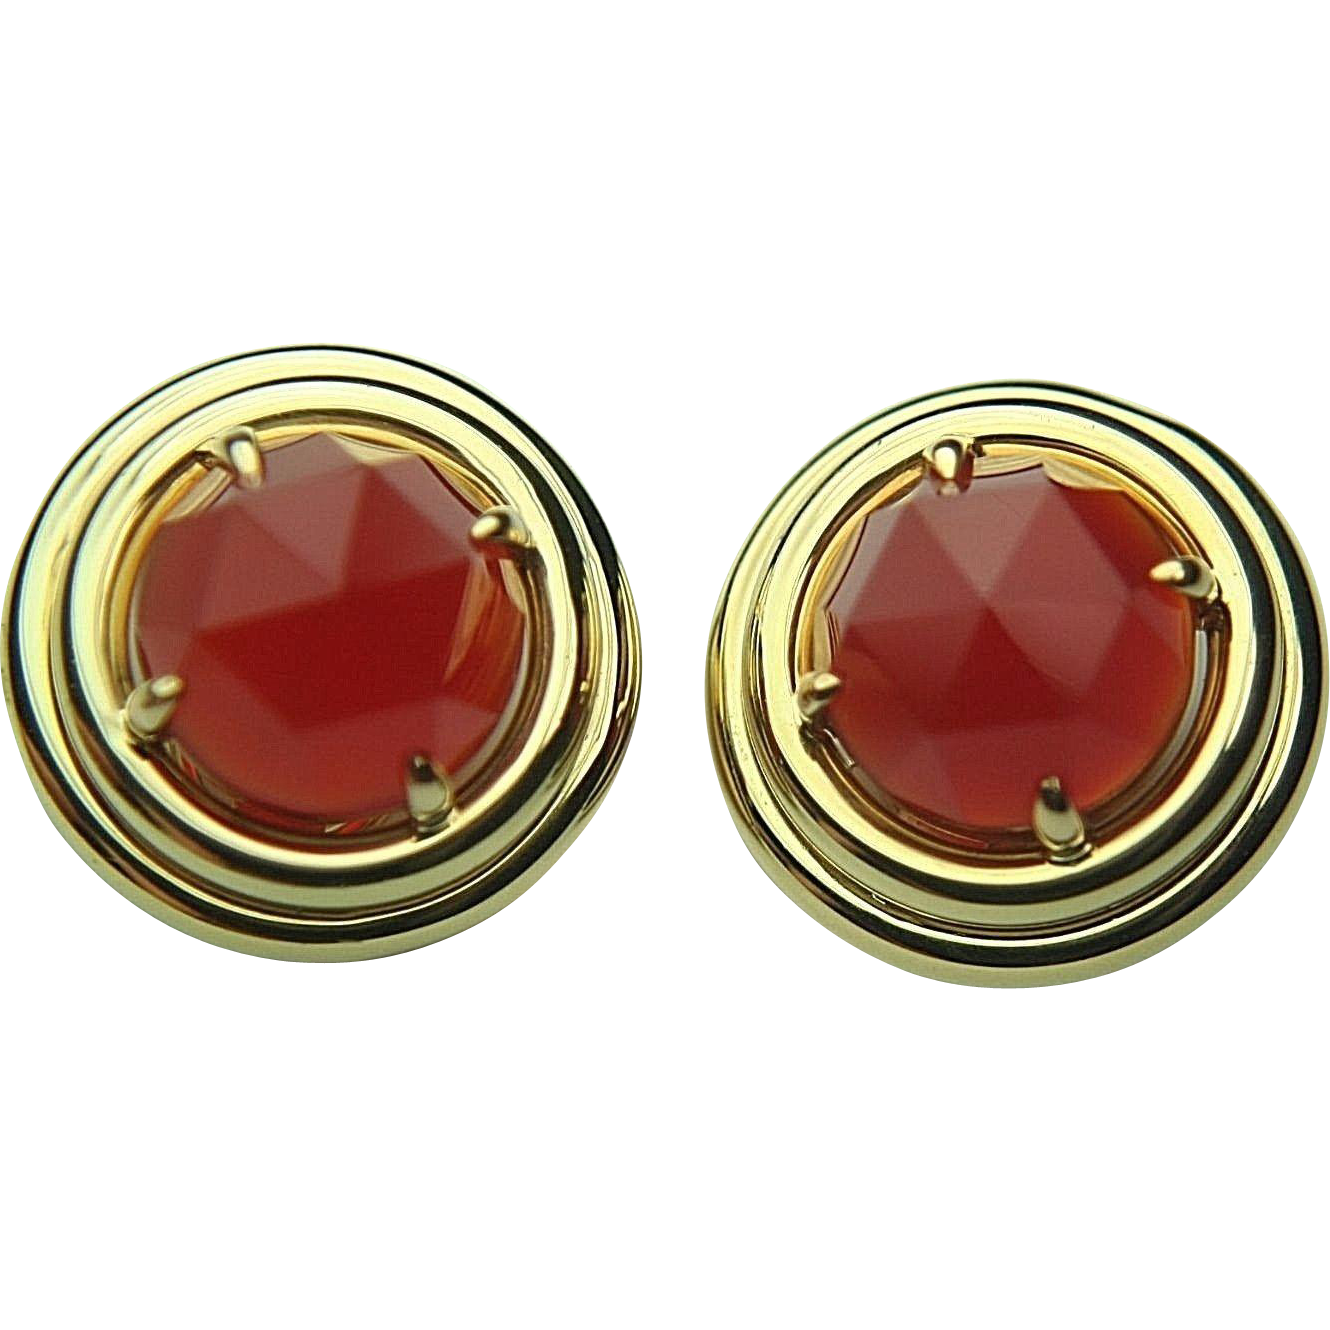 Vintage SF GUMPS 18k Solid Gold & Faceted Carnelian Earrings